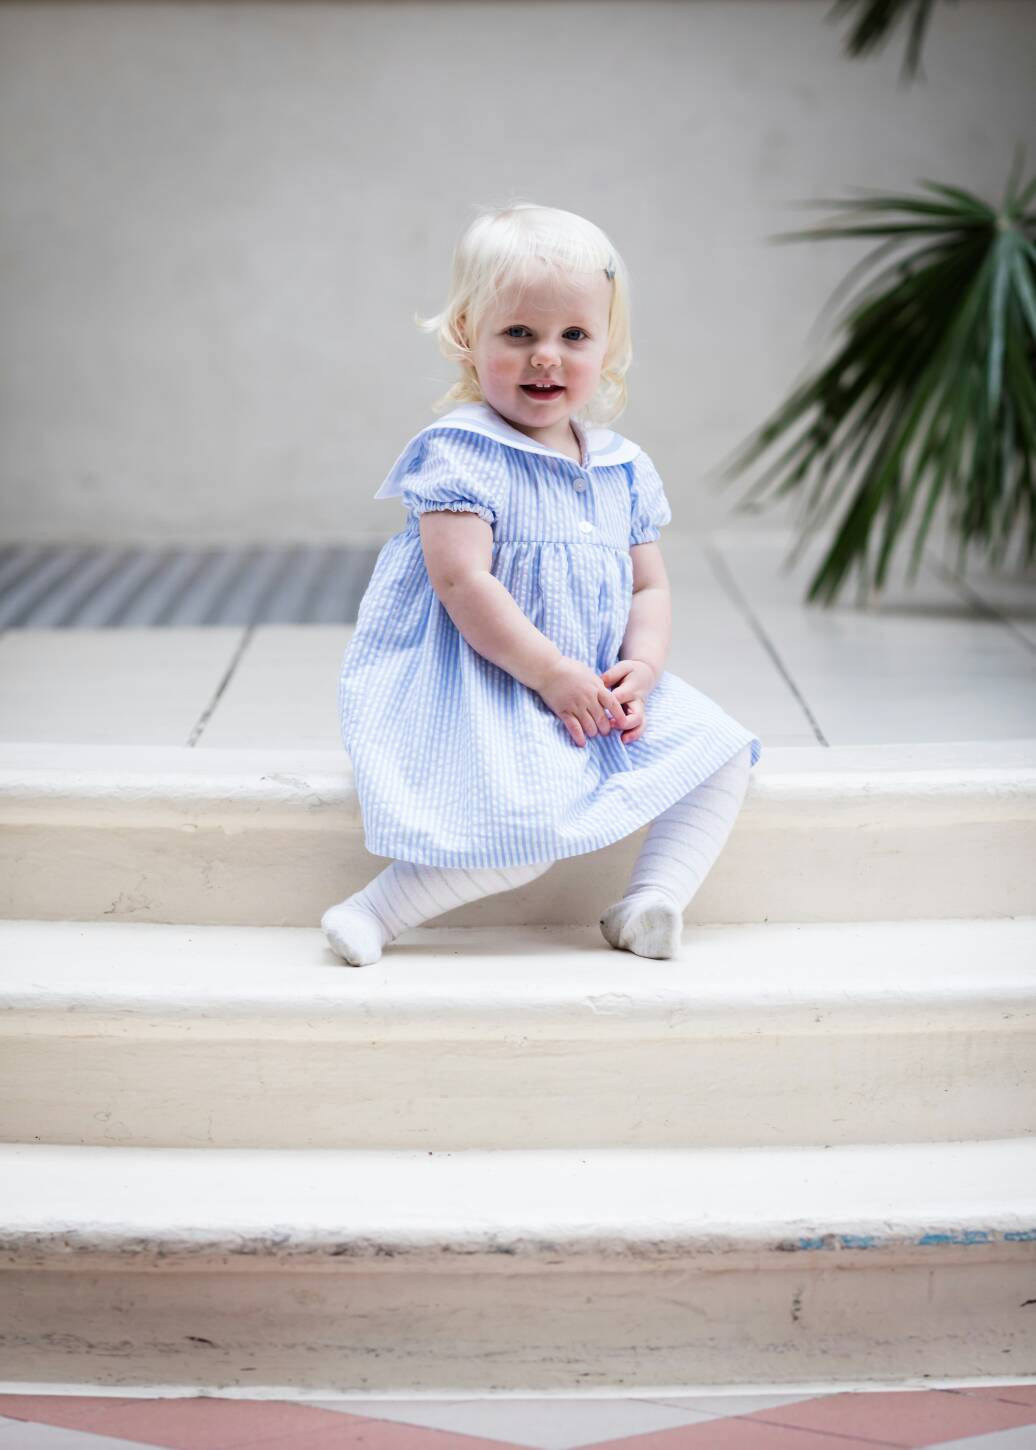 sailor christening dress baby